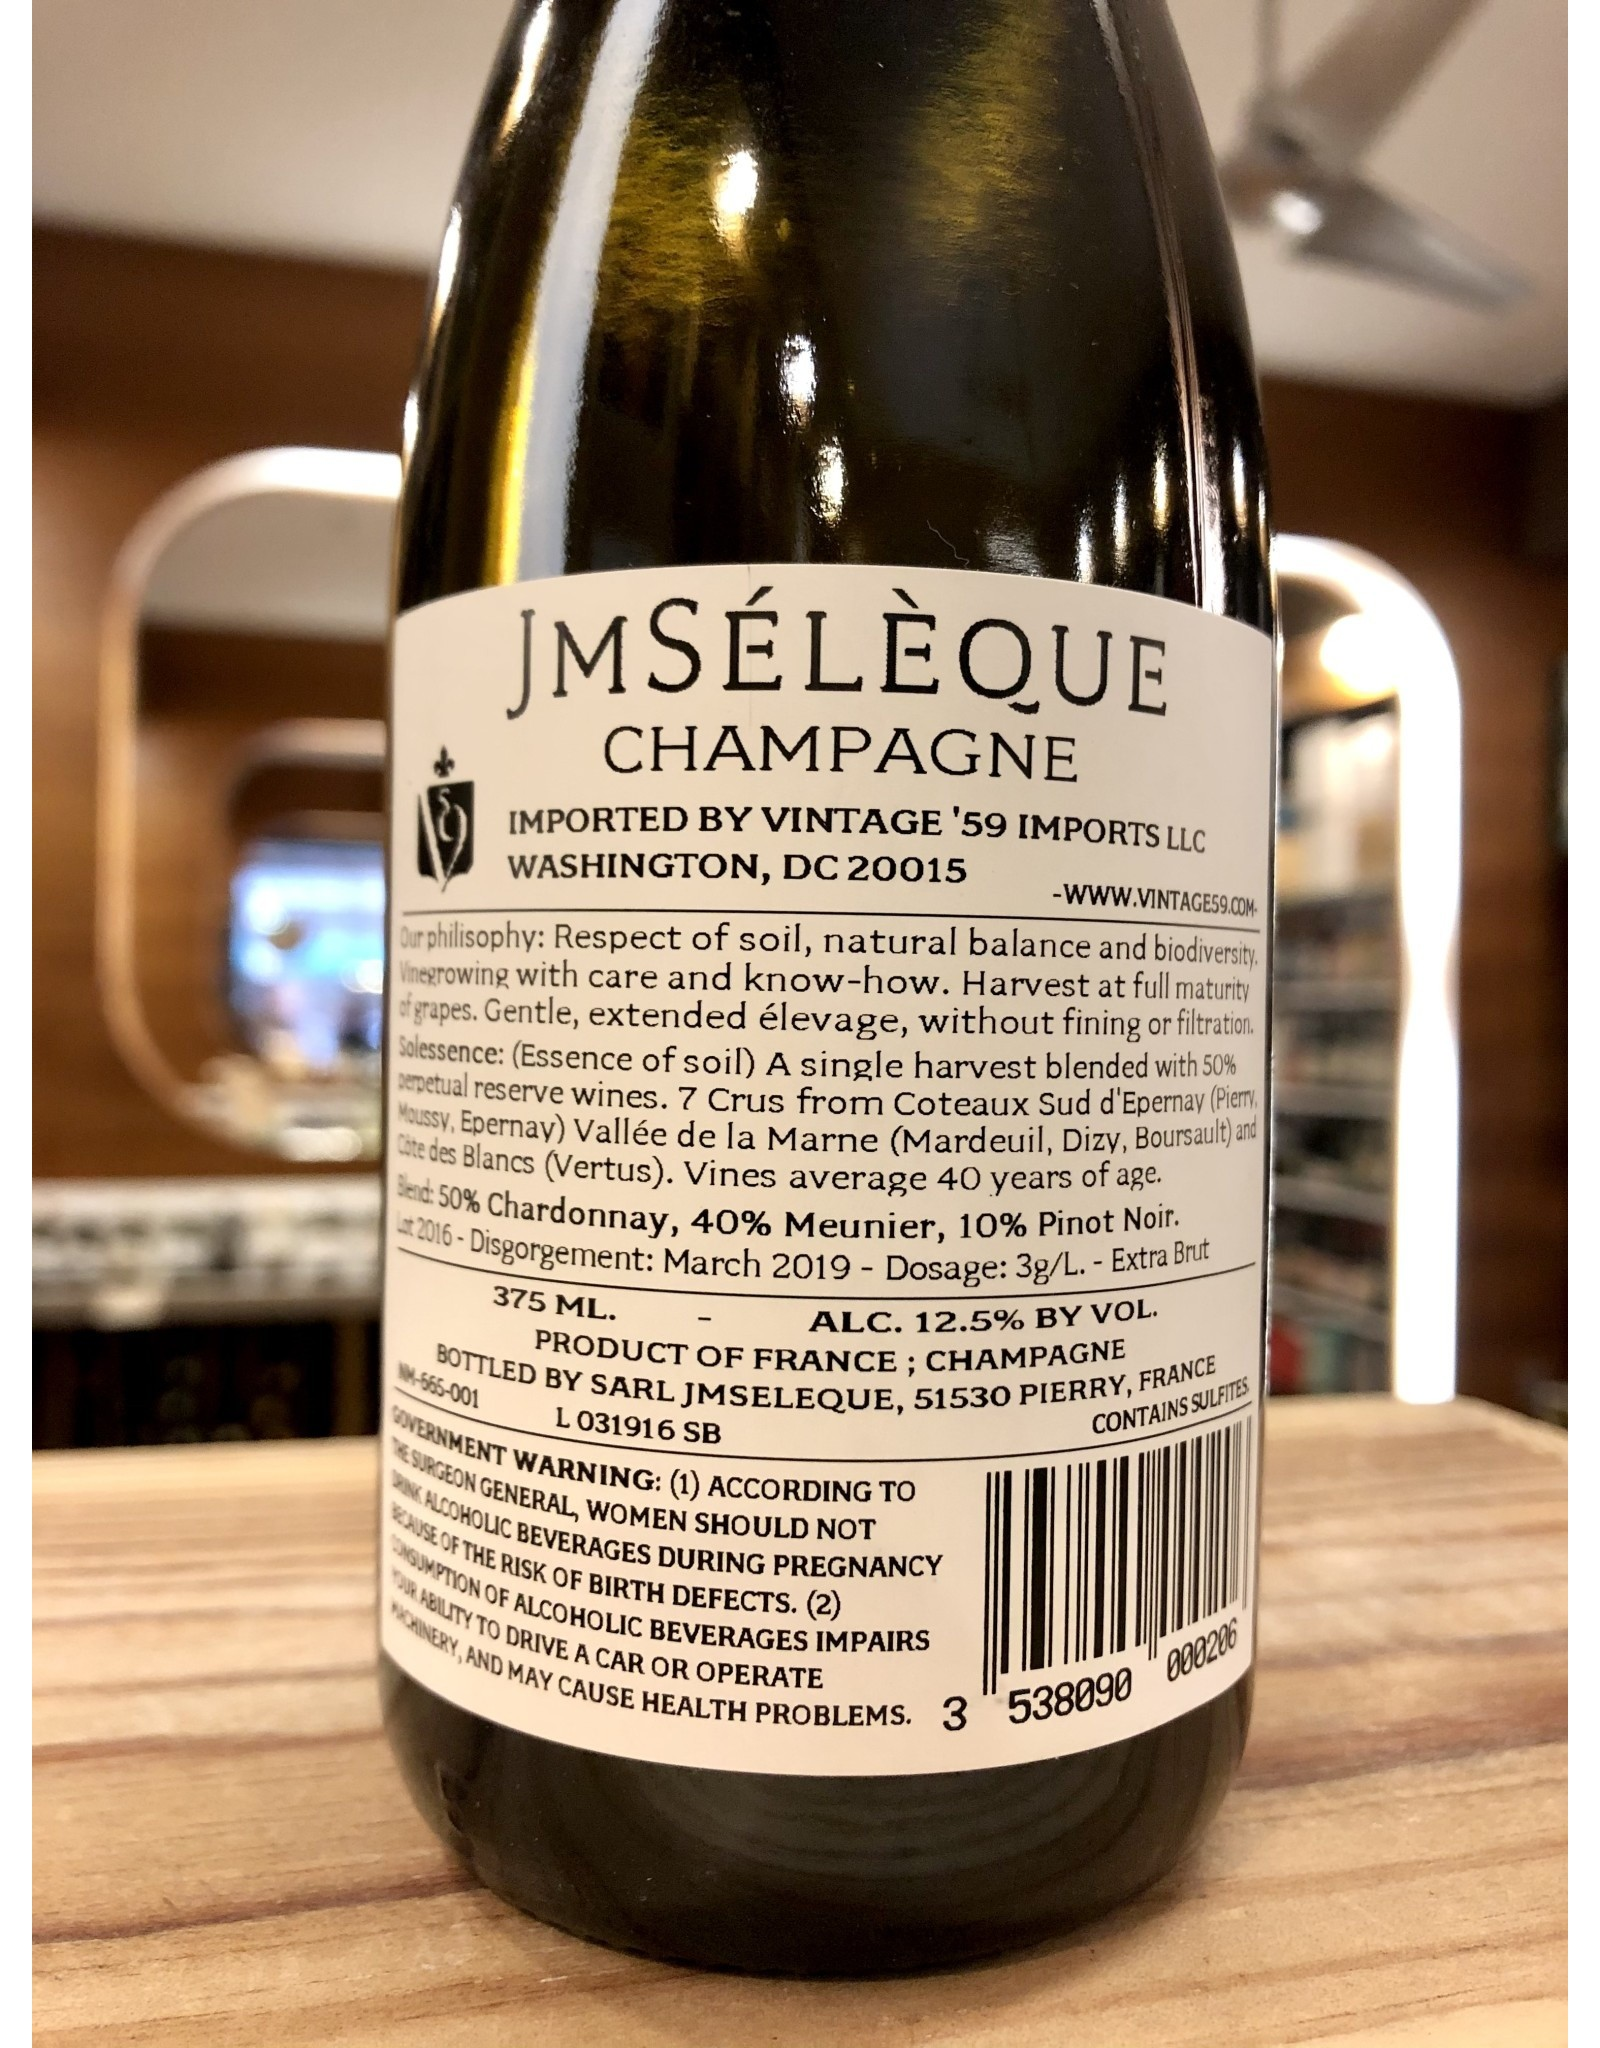 JM Seleque Solessence Champagne - 375 ML